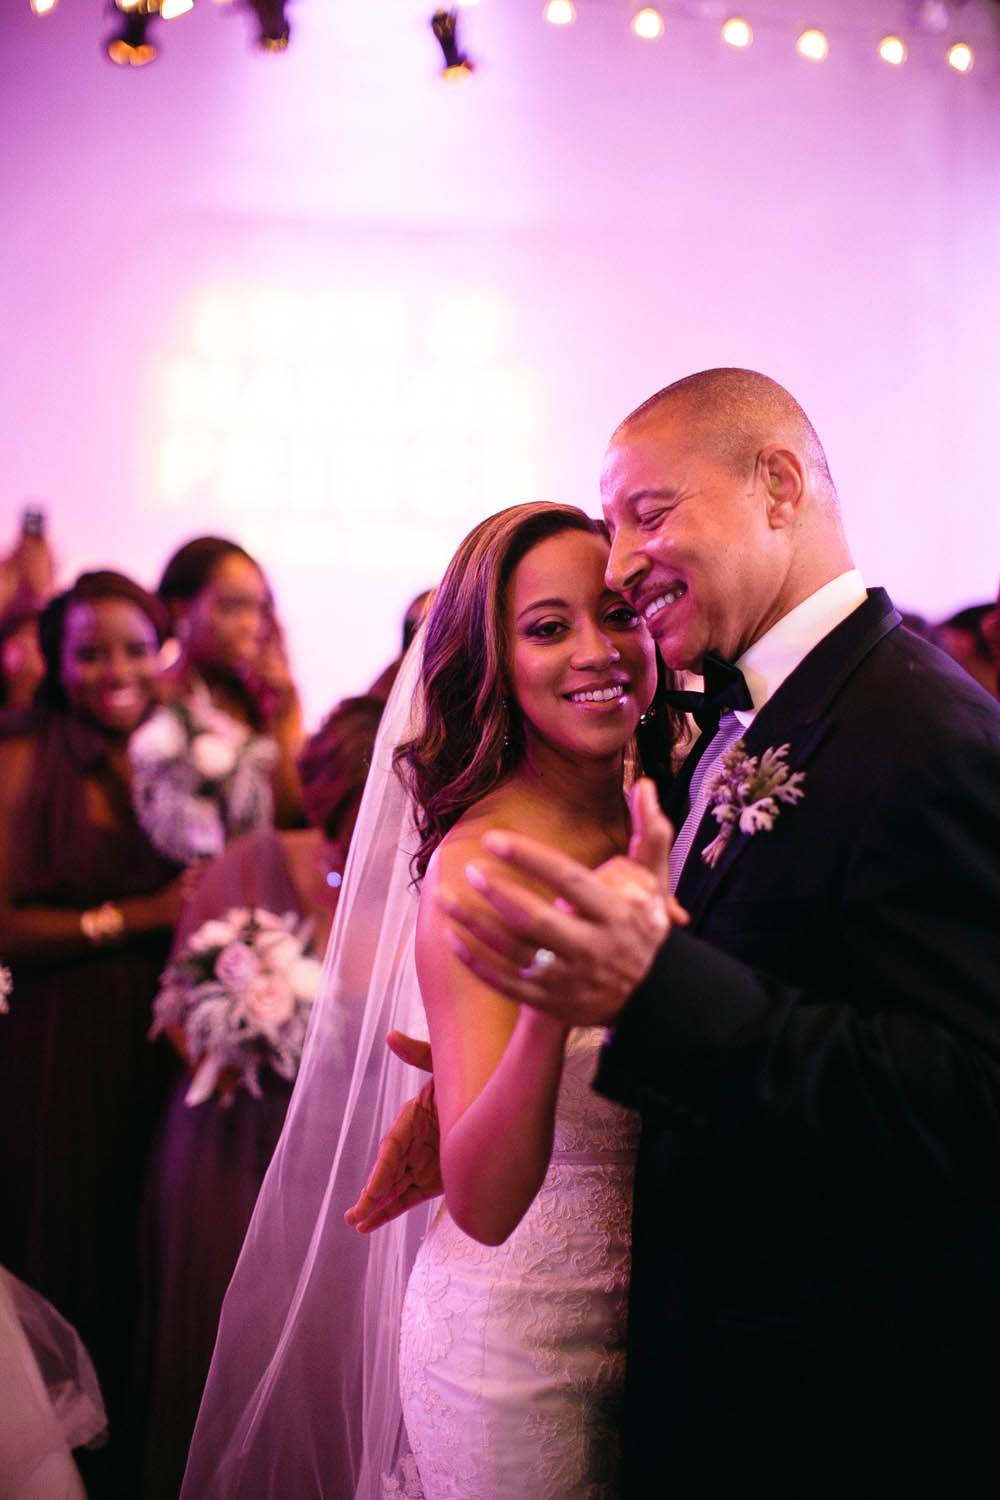 nashville ruby film documentary wedding photographer heartfelt real moments african american wedding munalachi bride ©2016abigailbobophotography-46.jpg